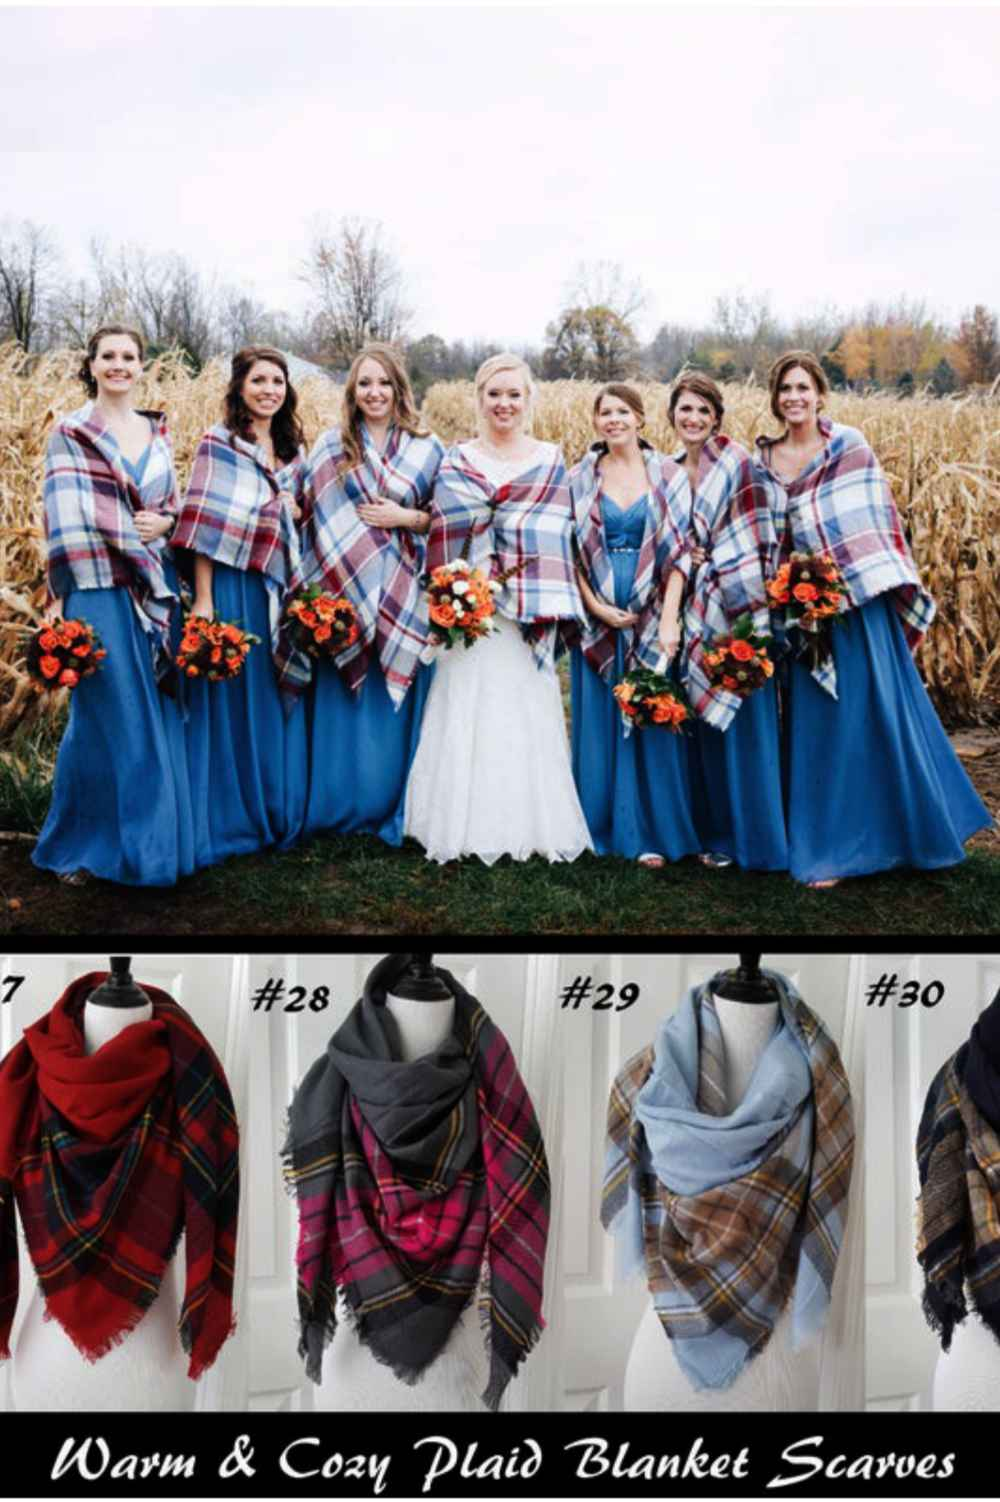 Wedding Blanket Scarves for Bridesmaids